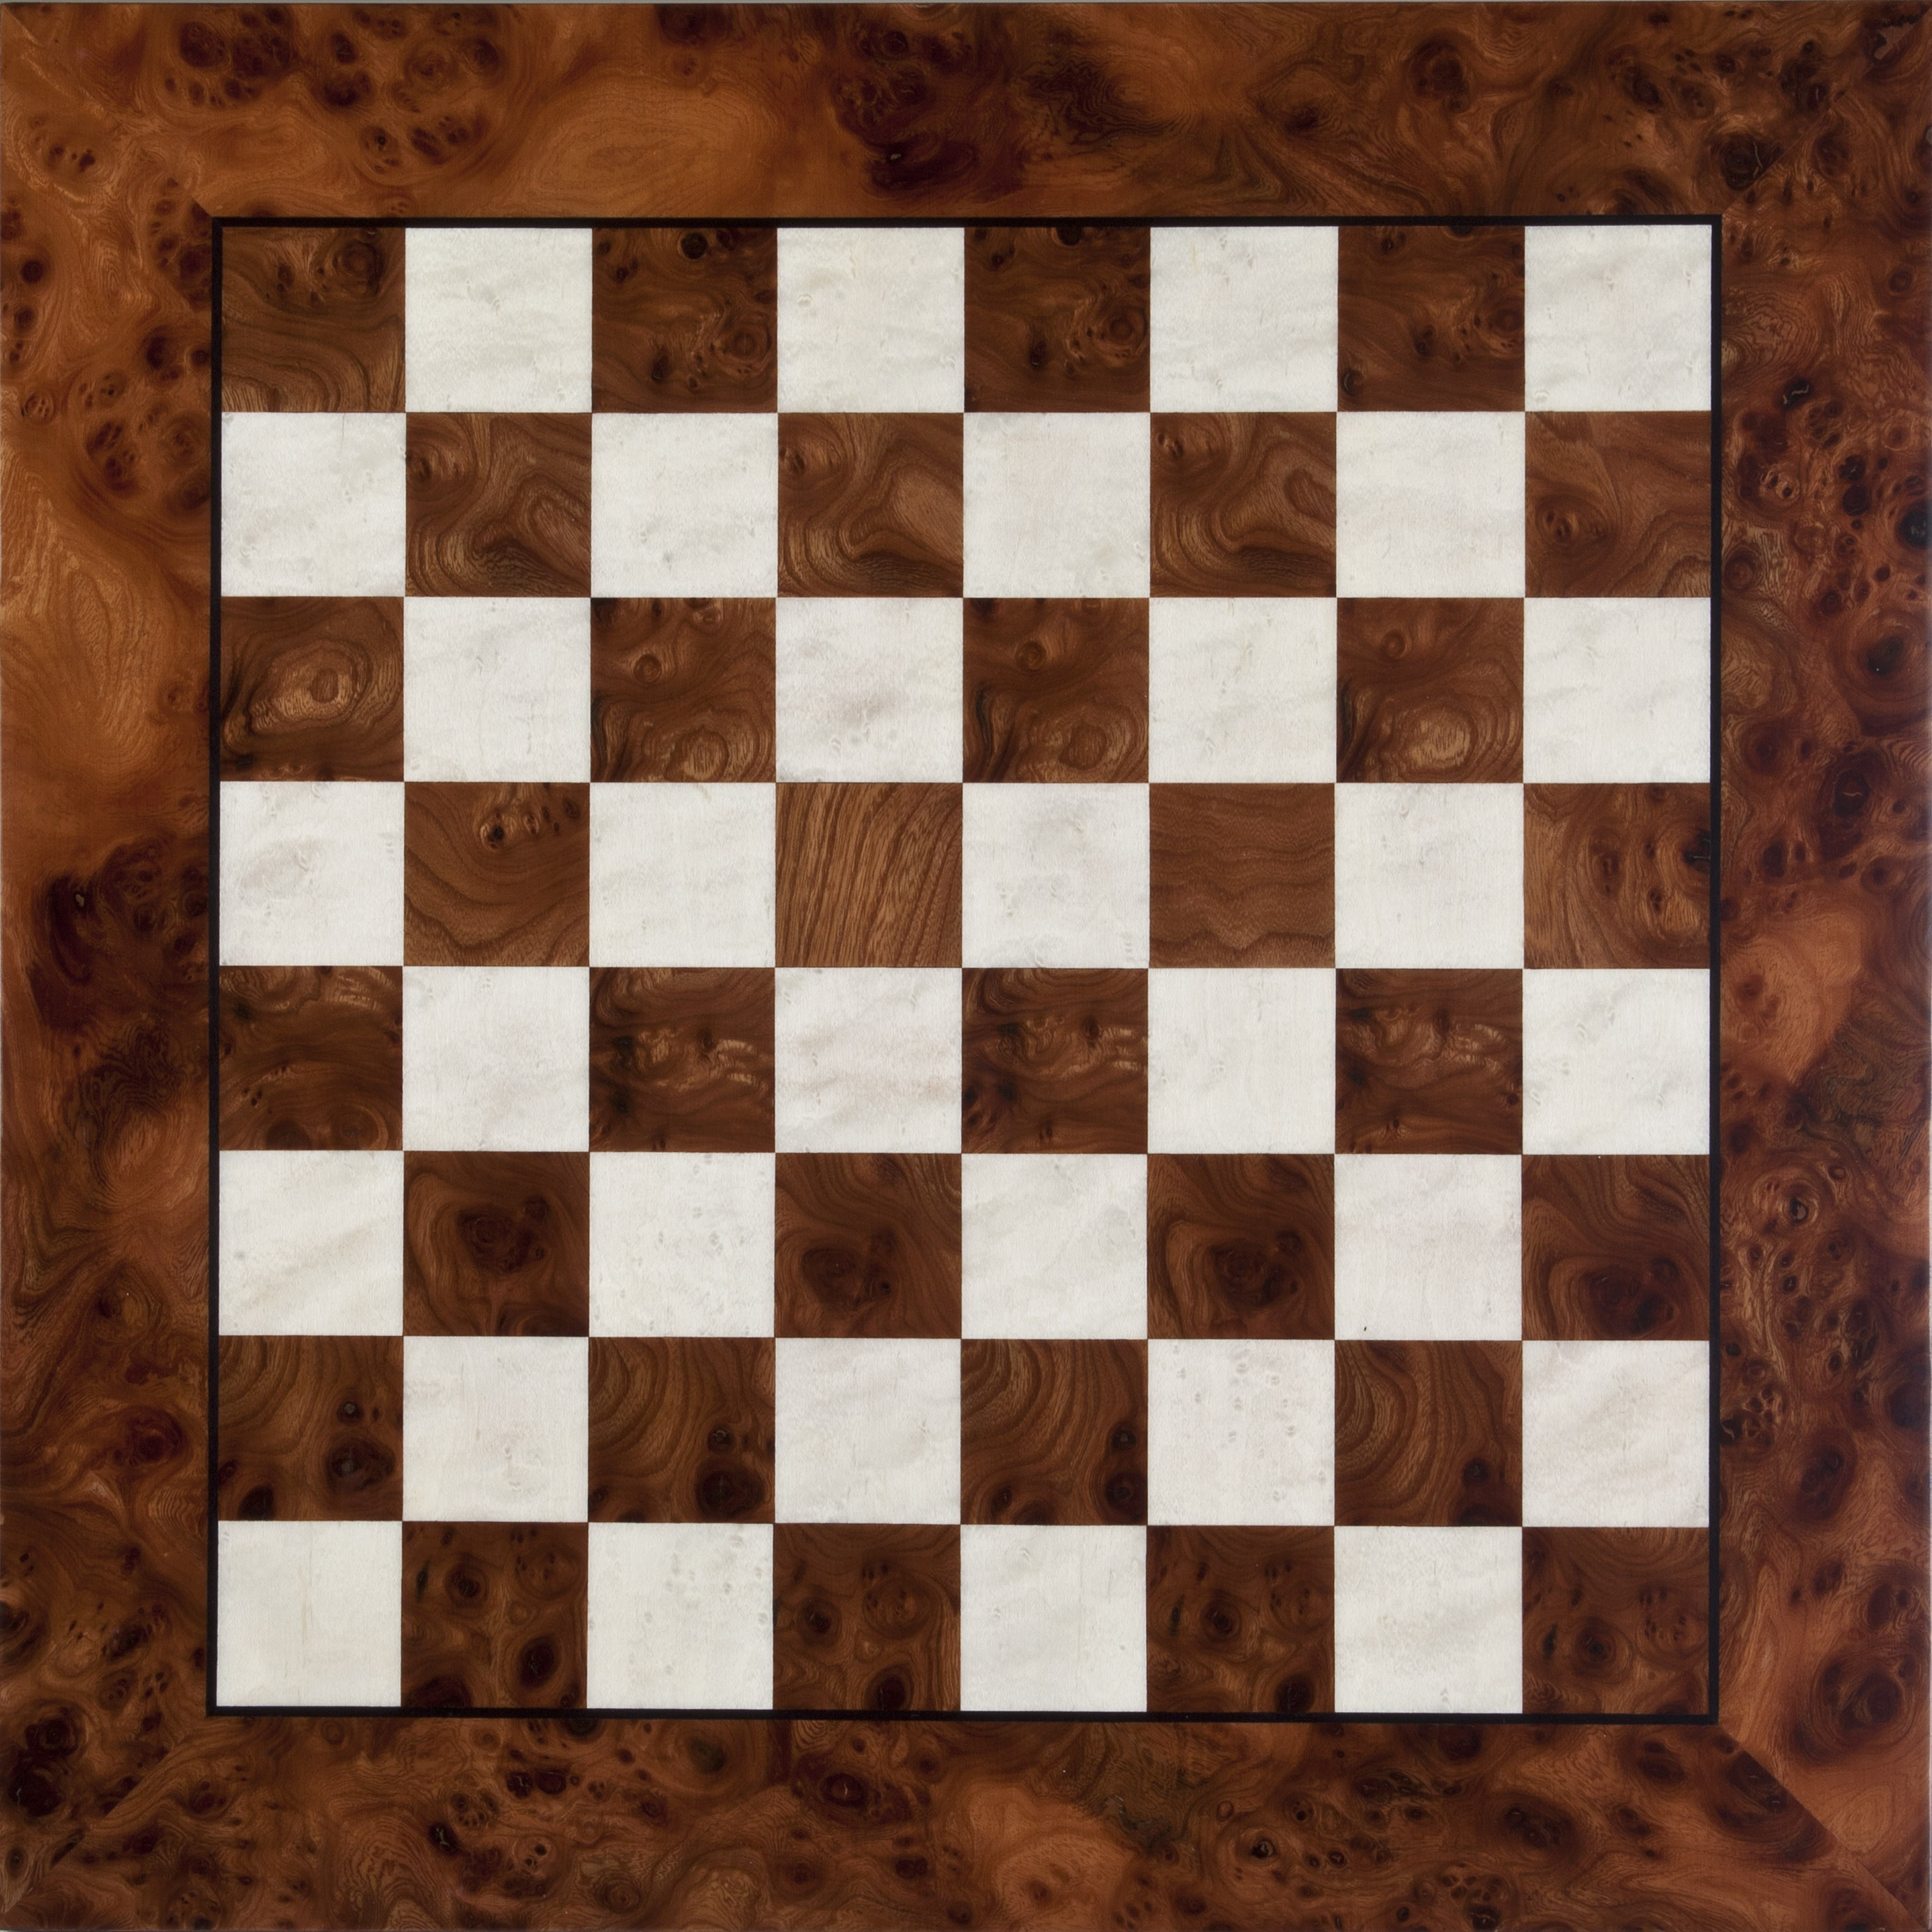 Chess, Checkers Boards